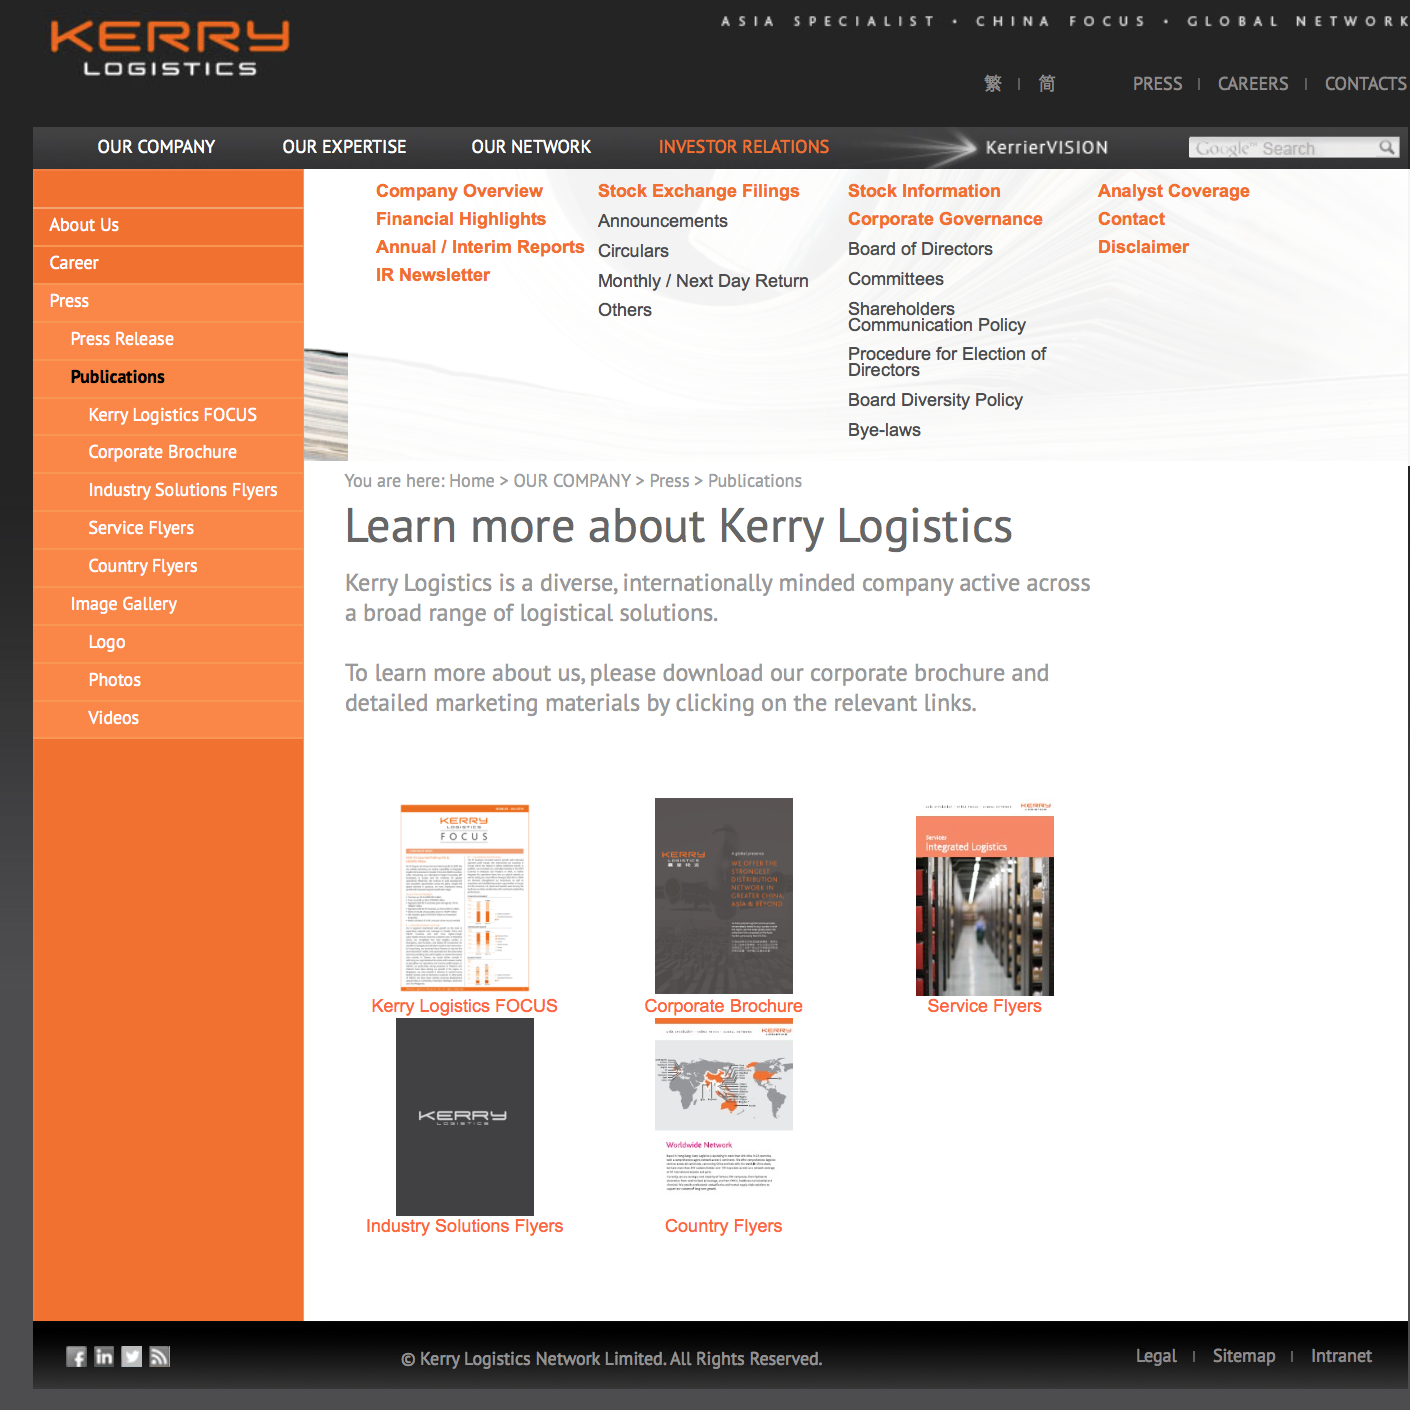 Downloadable resources on the Kerry Logistics homepage